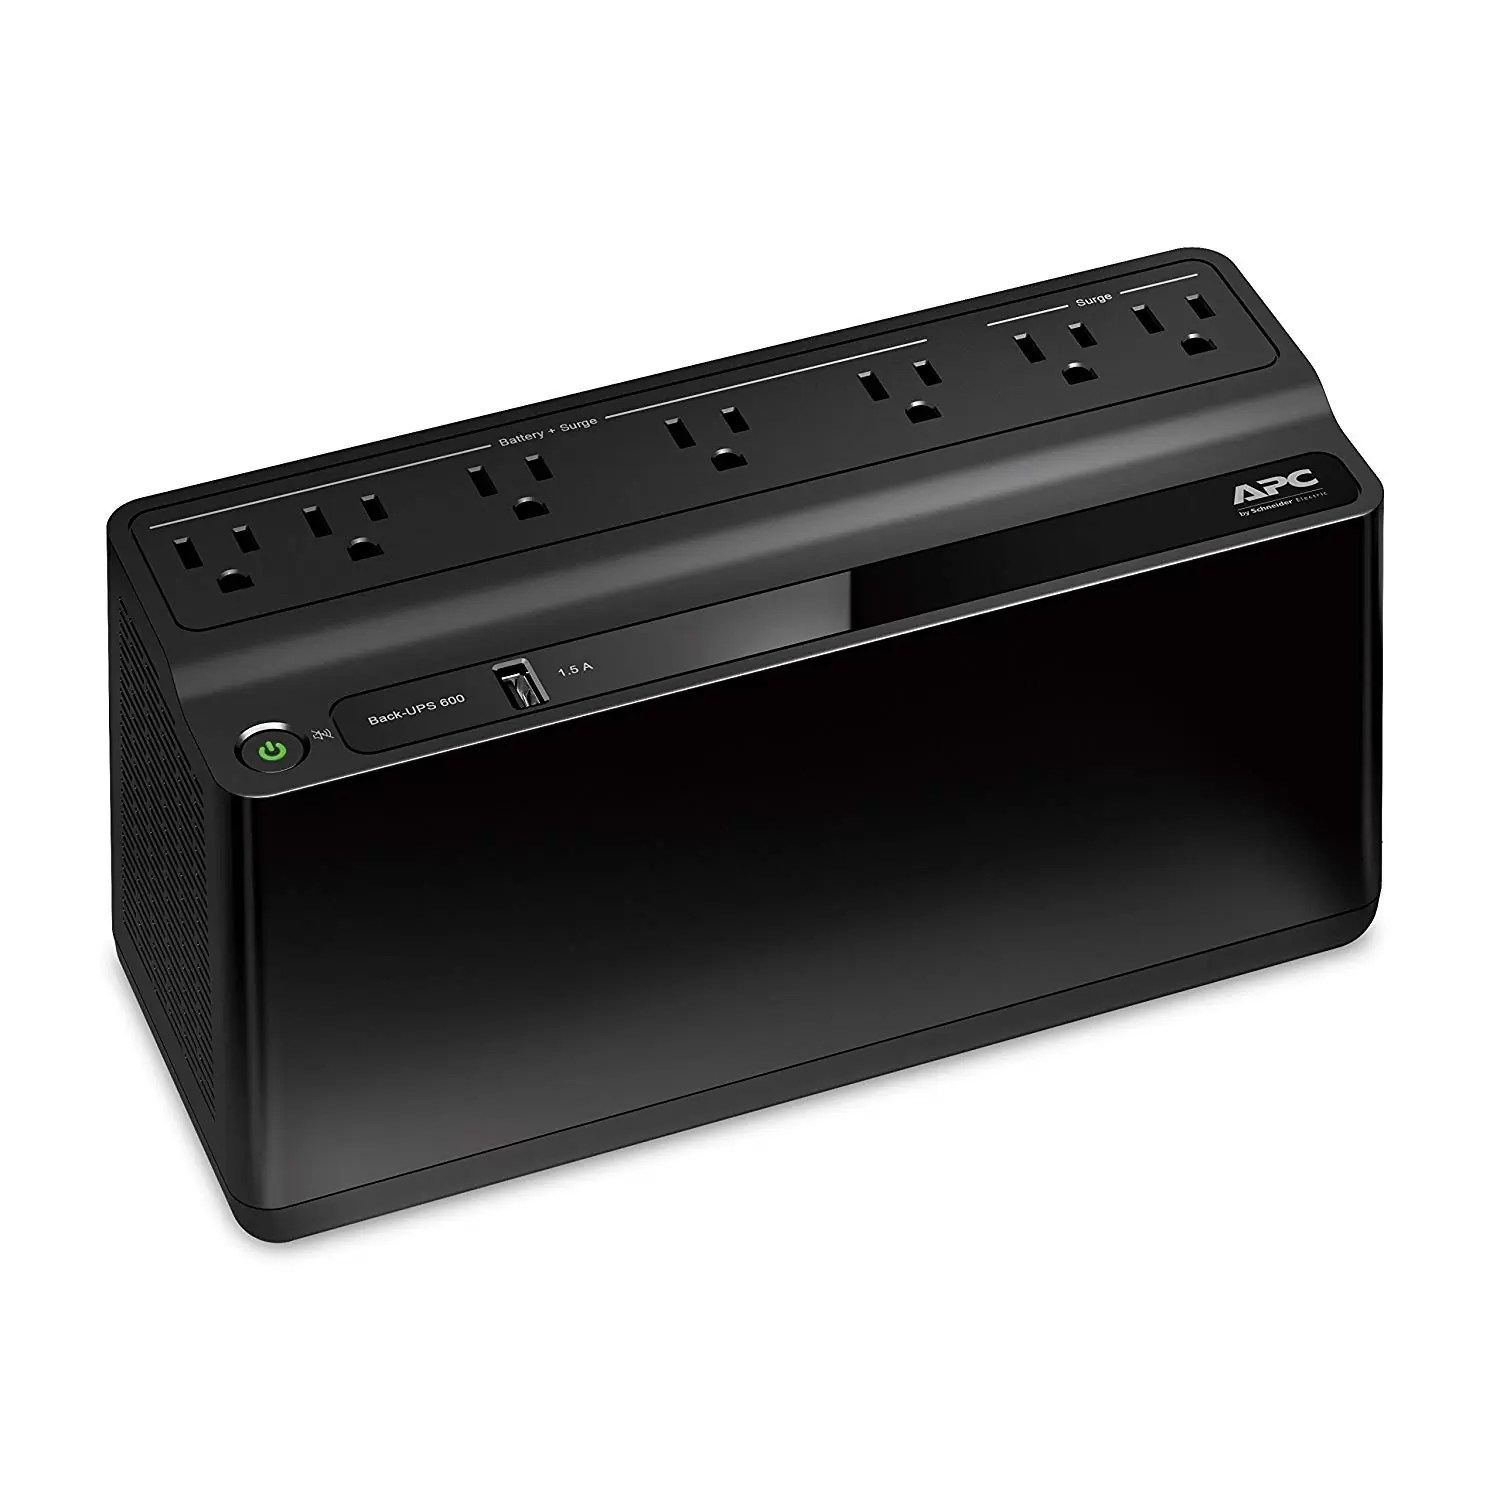 APC UPS 600VA Battery Backup Surge Protector with USB Charging Port, APC UPS BackUPS (BE600M1)